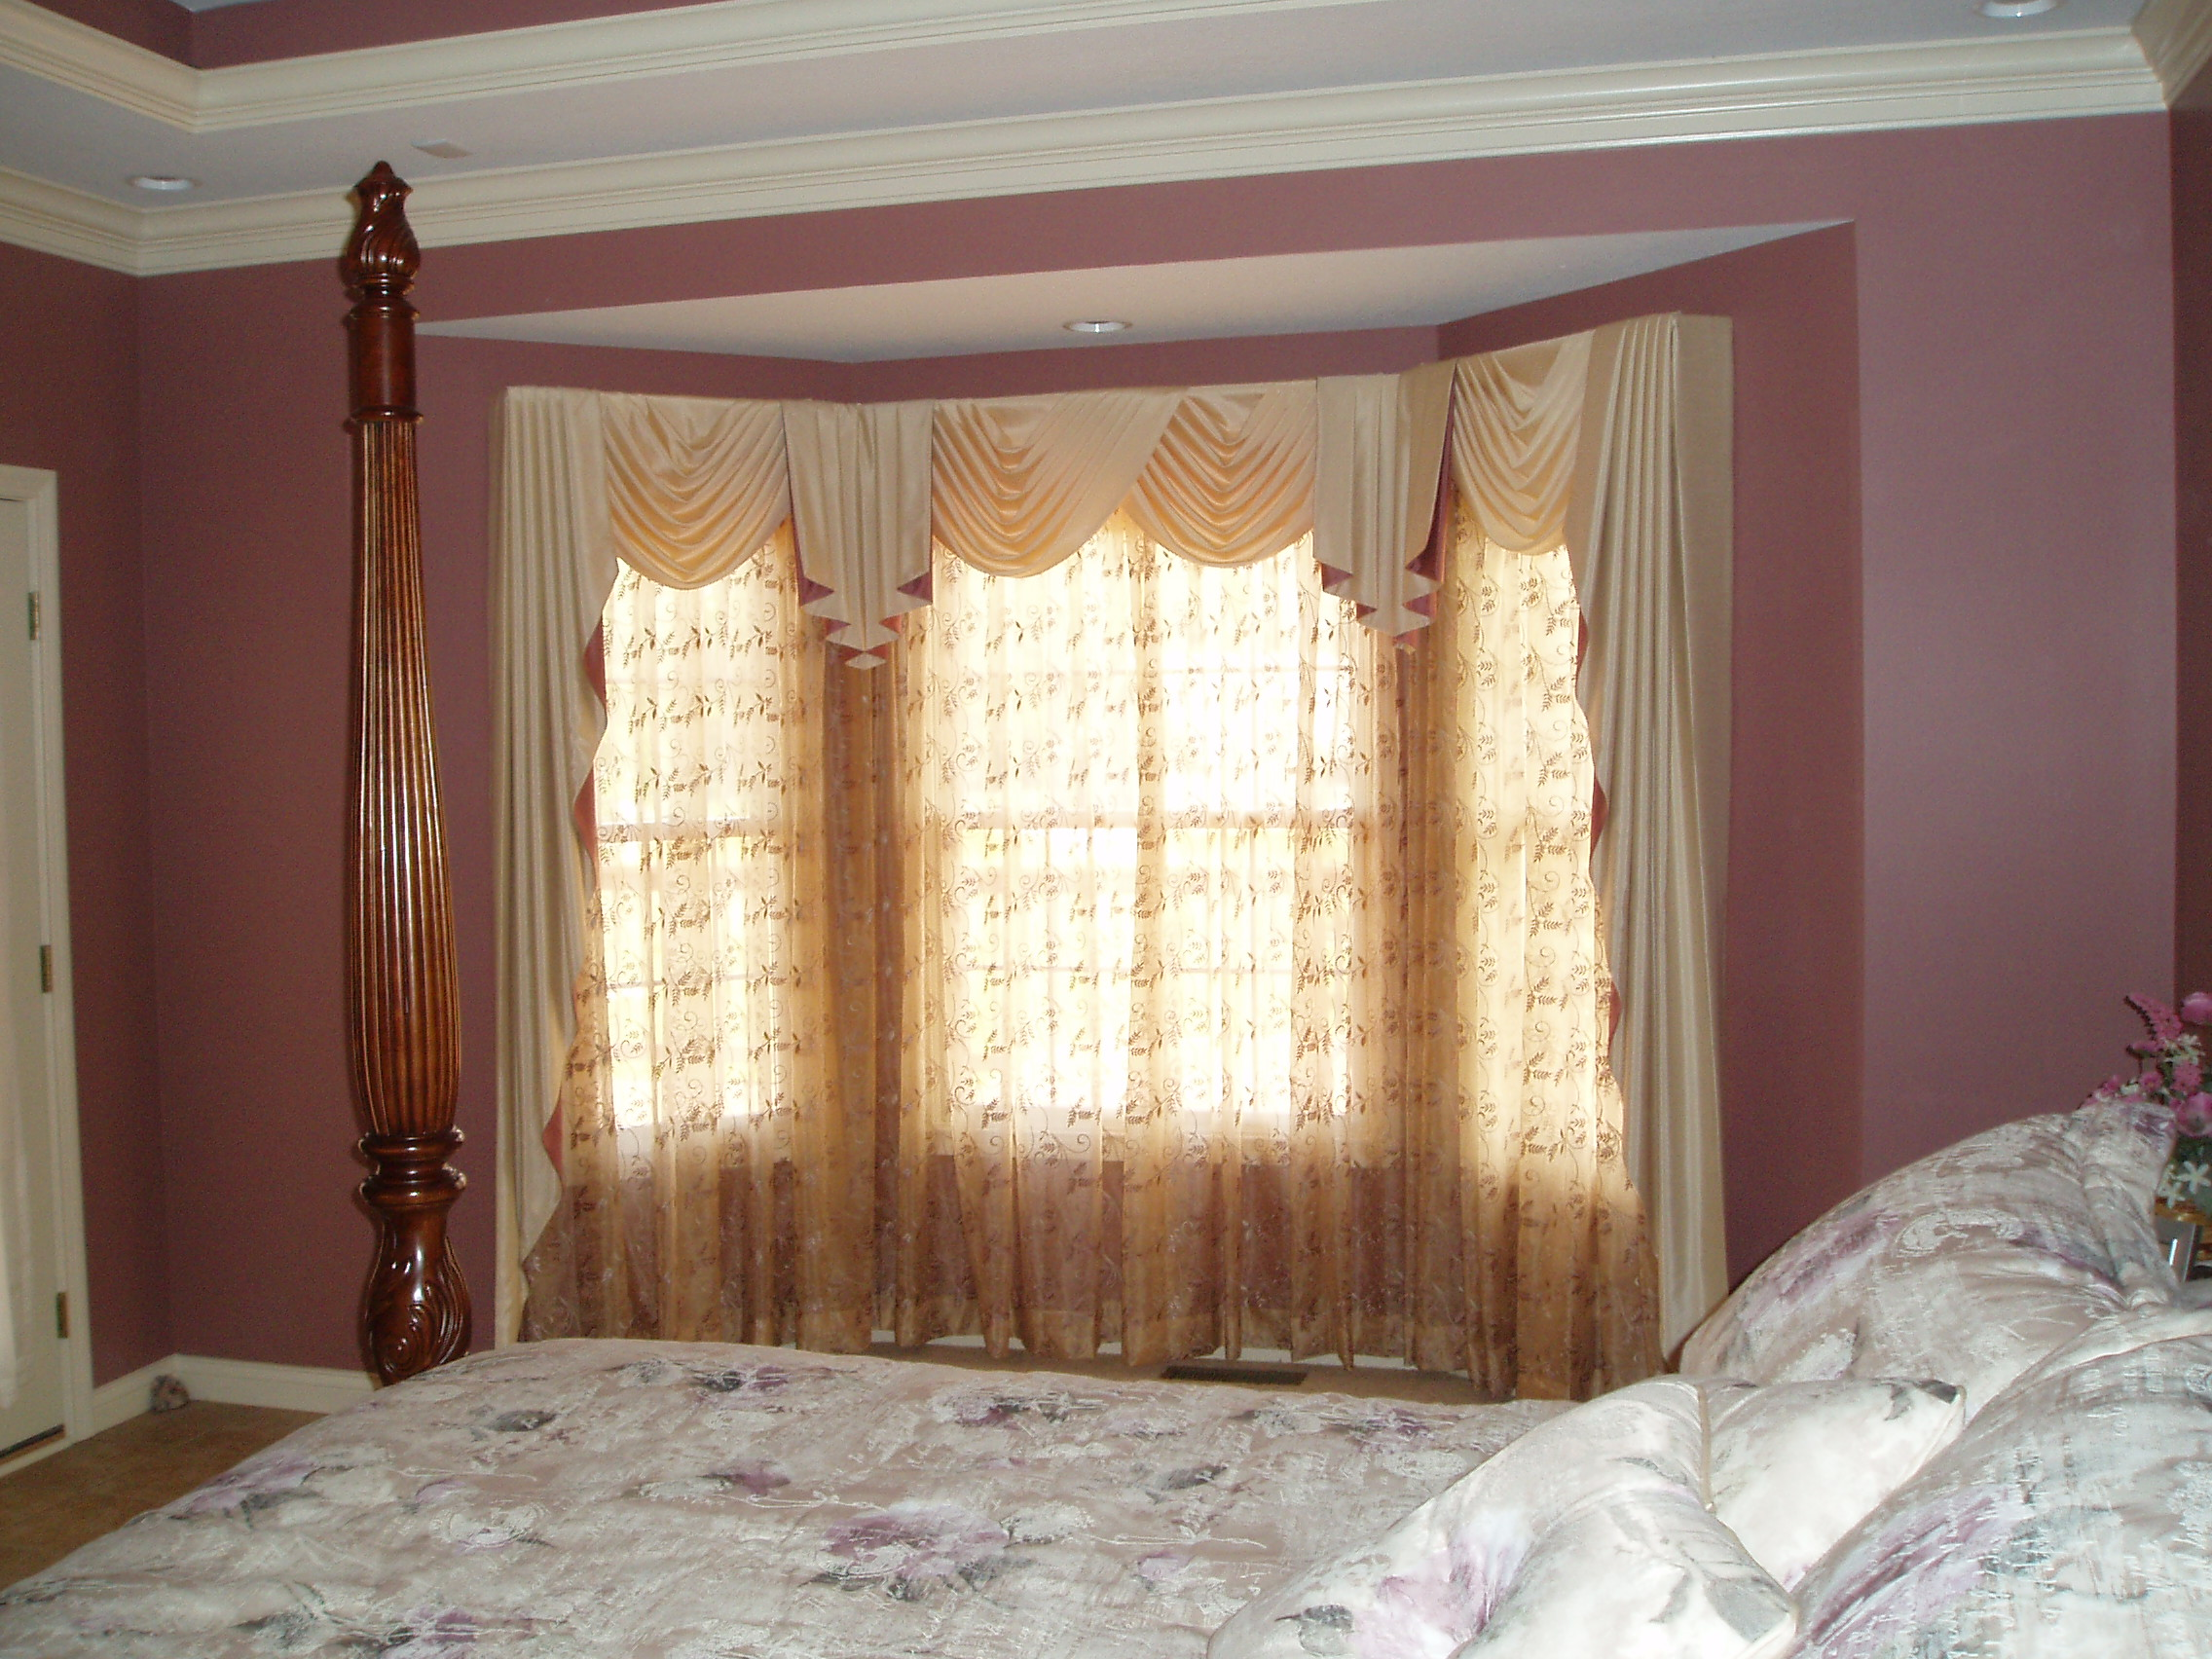 Bow window treatment ideas pictures window treatments design ideas Window coverings for bedrooms